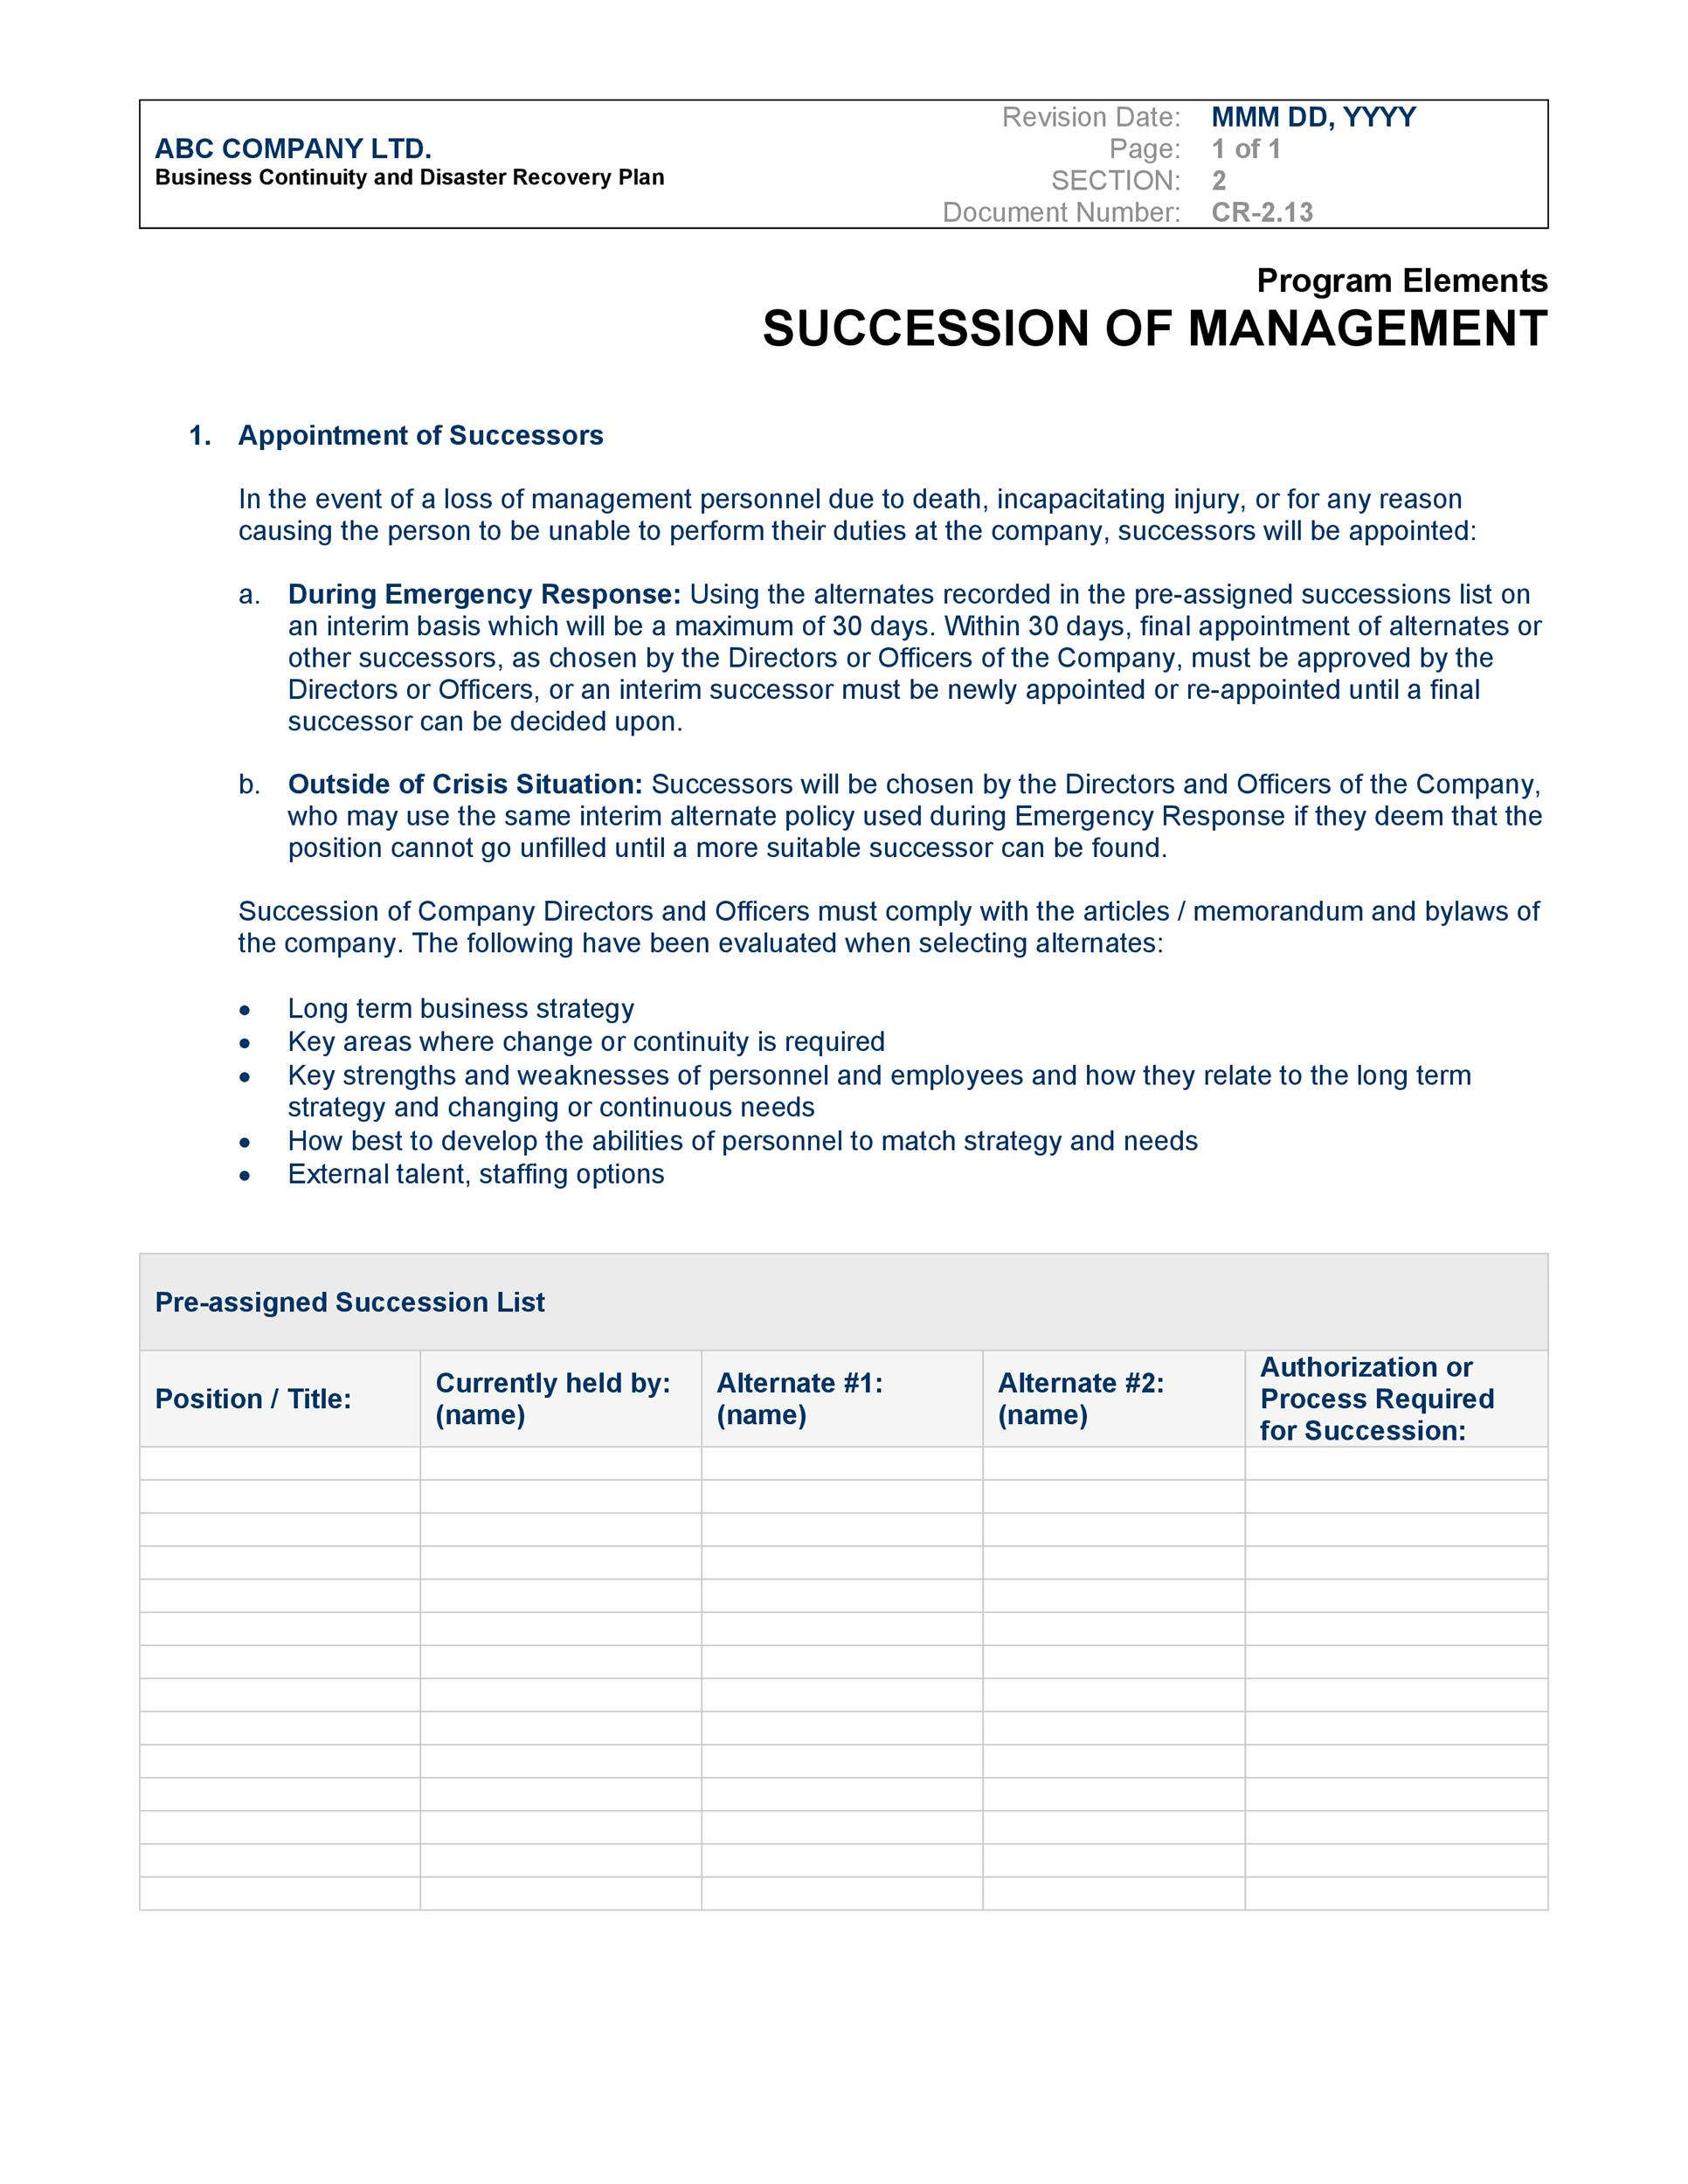 Free Disaster Recovery Plan Template 16